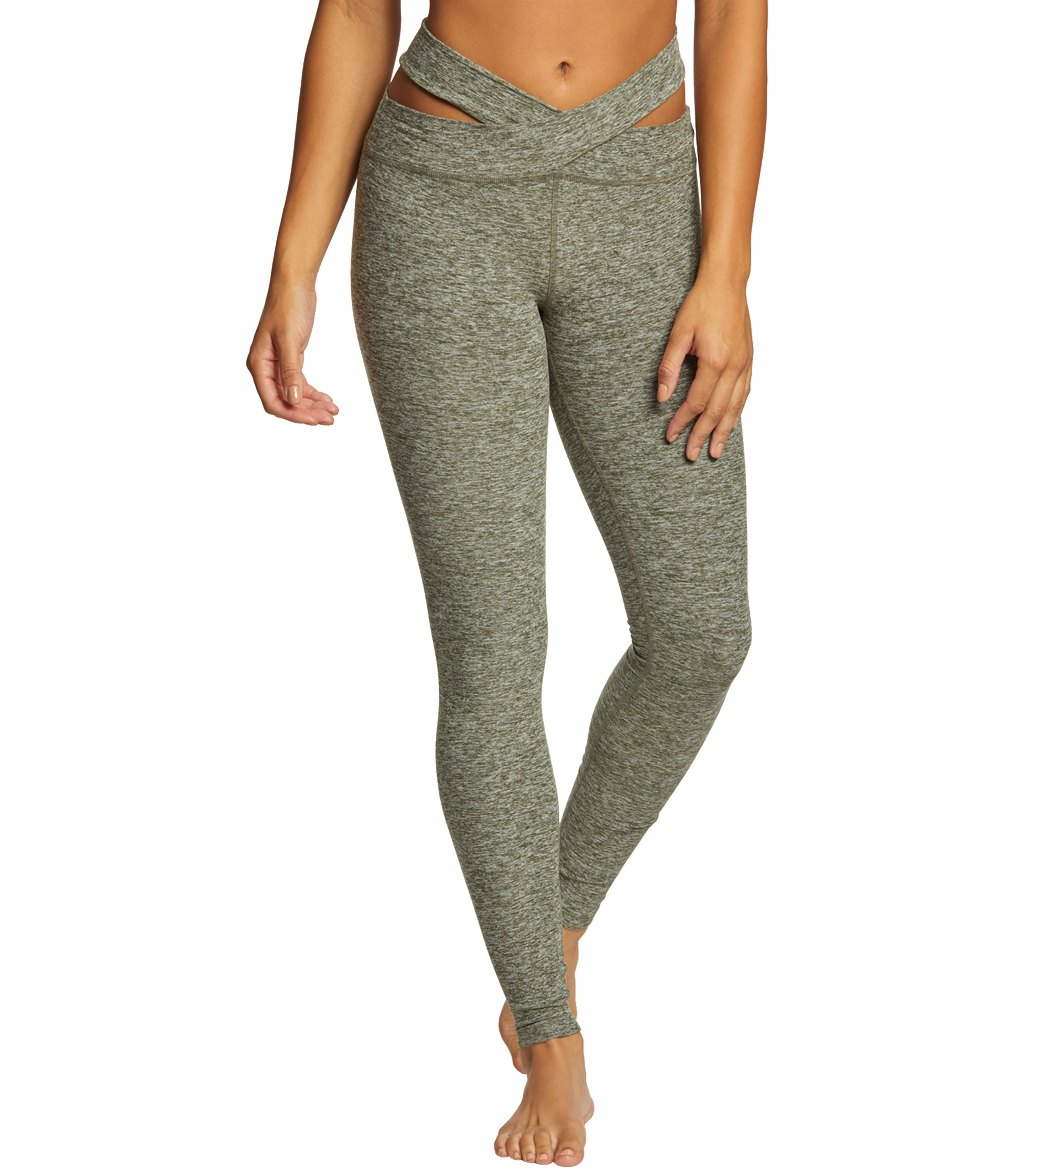 9a9dbf6aaae47 Beyond Yoga East Bound Spacedye Long Legging at YogaOutlet.com ...